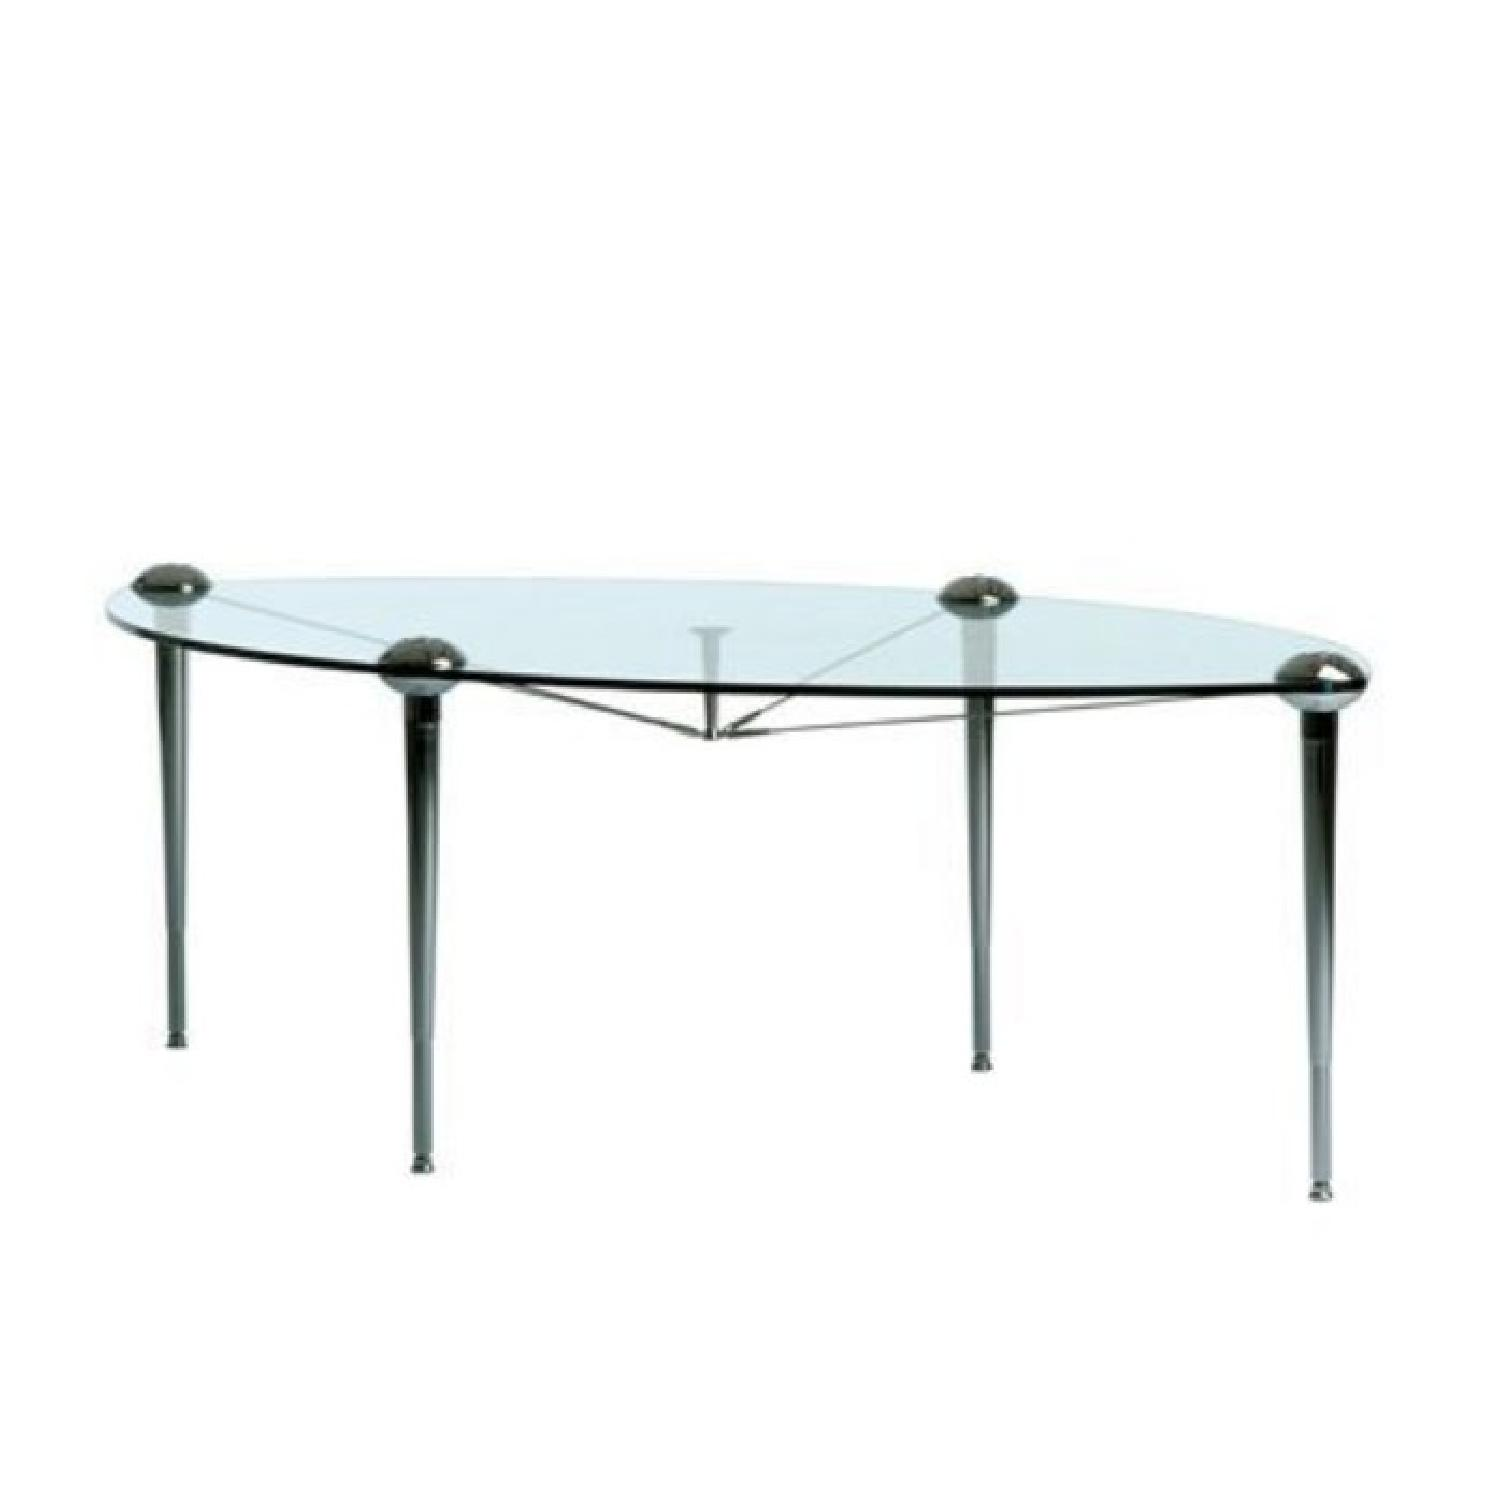 Baleri Italia Hannes Wettstein's Glass Dining Table